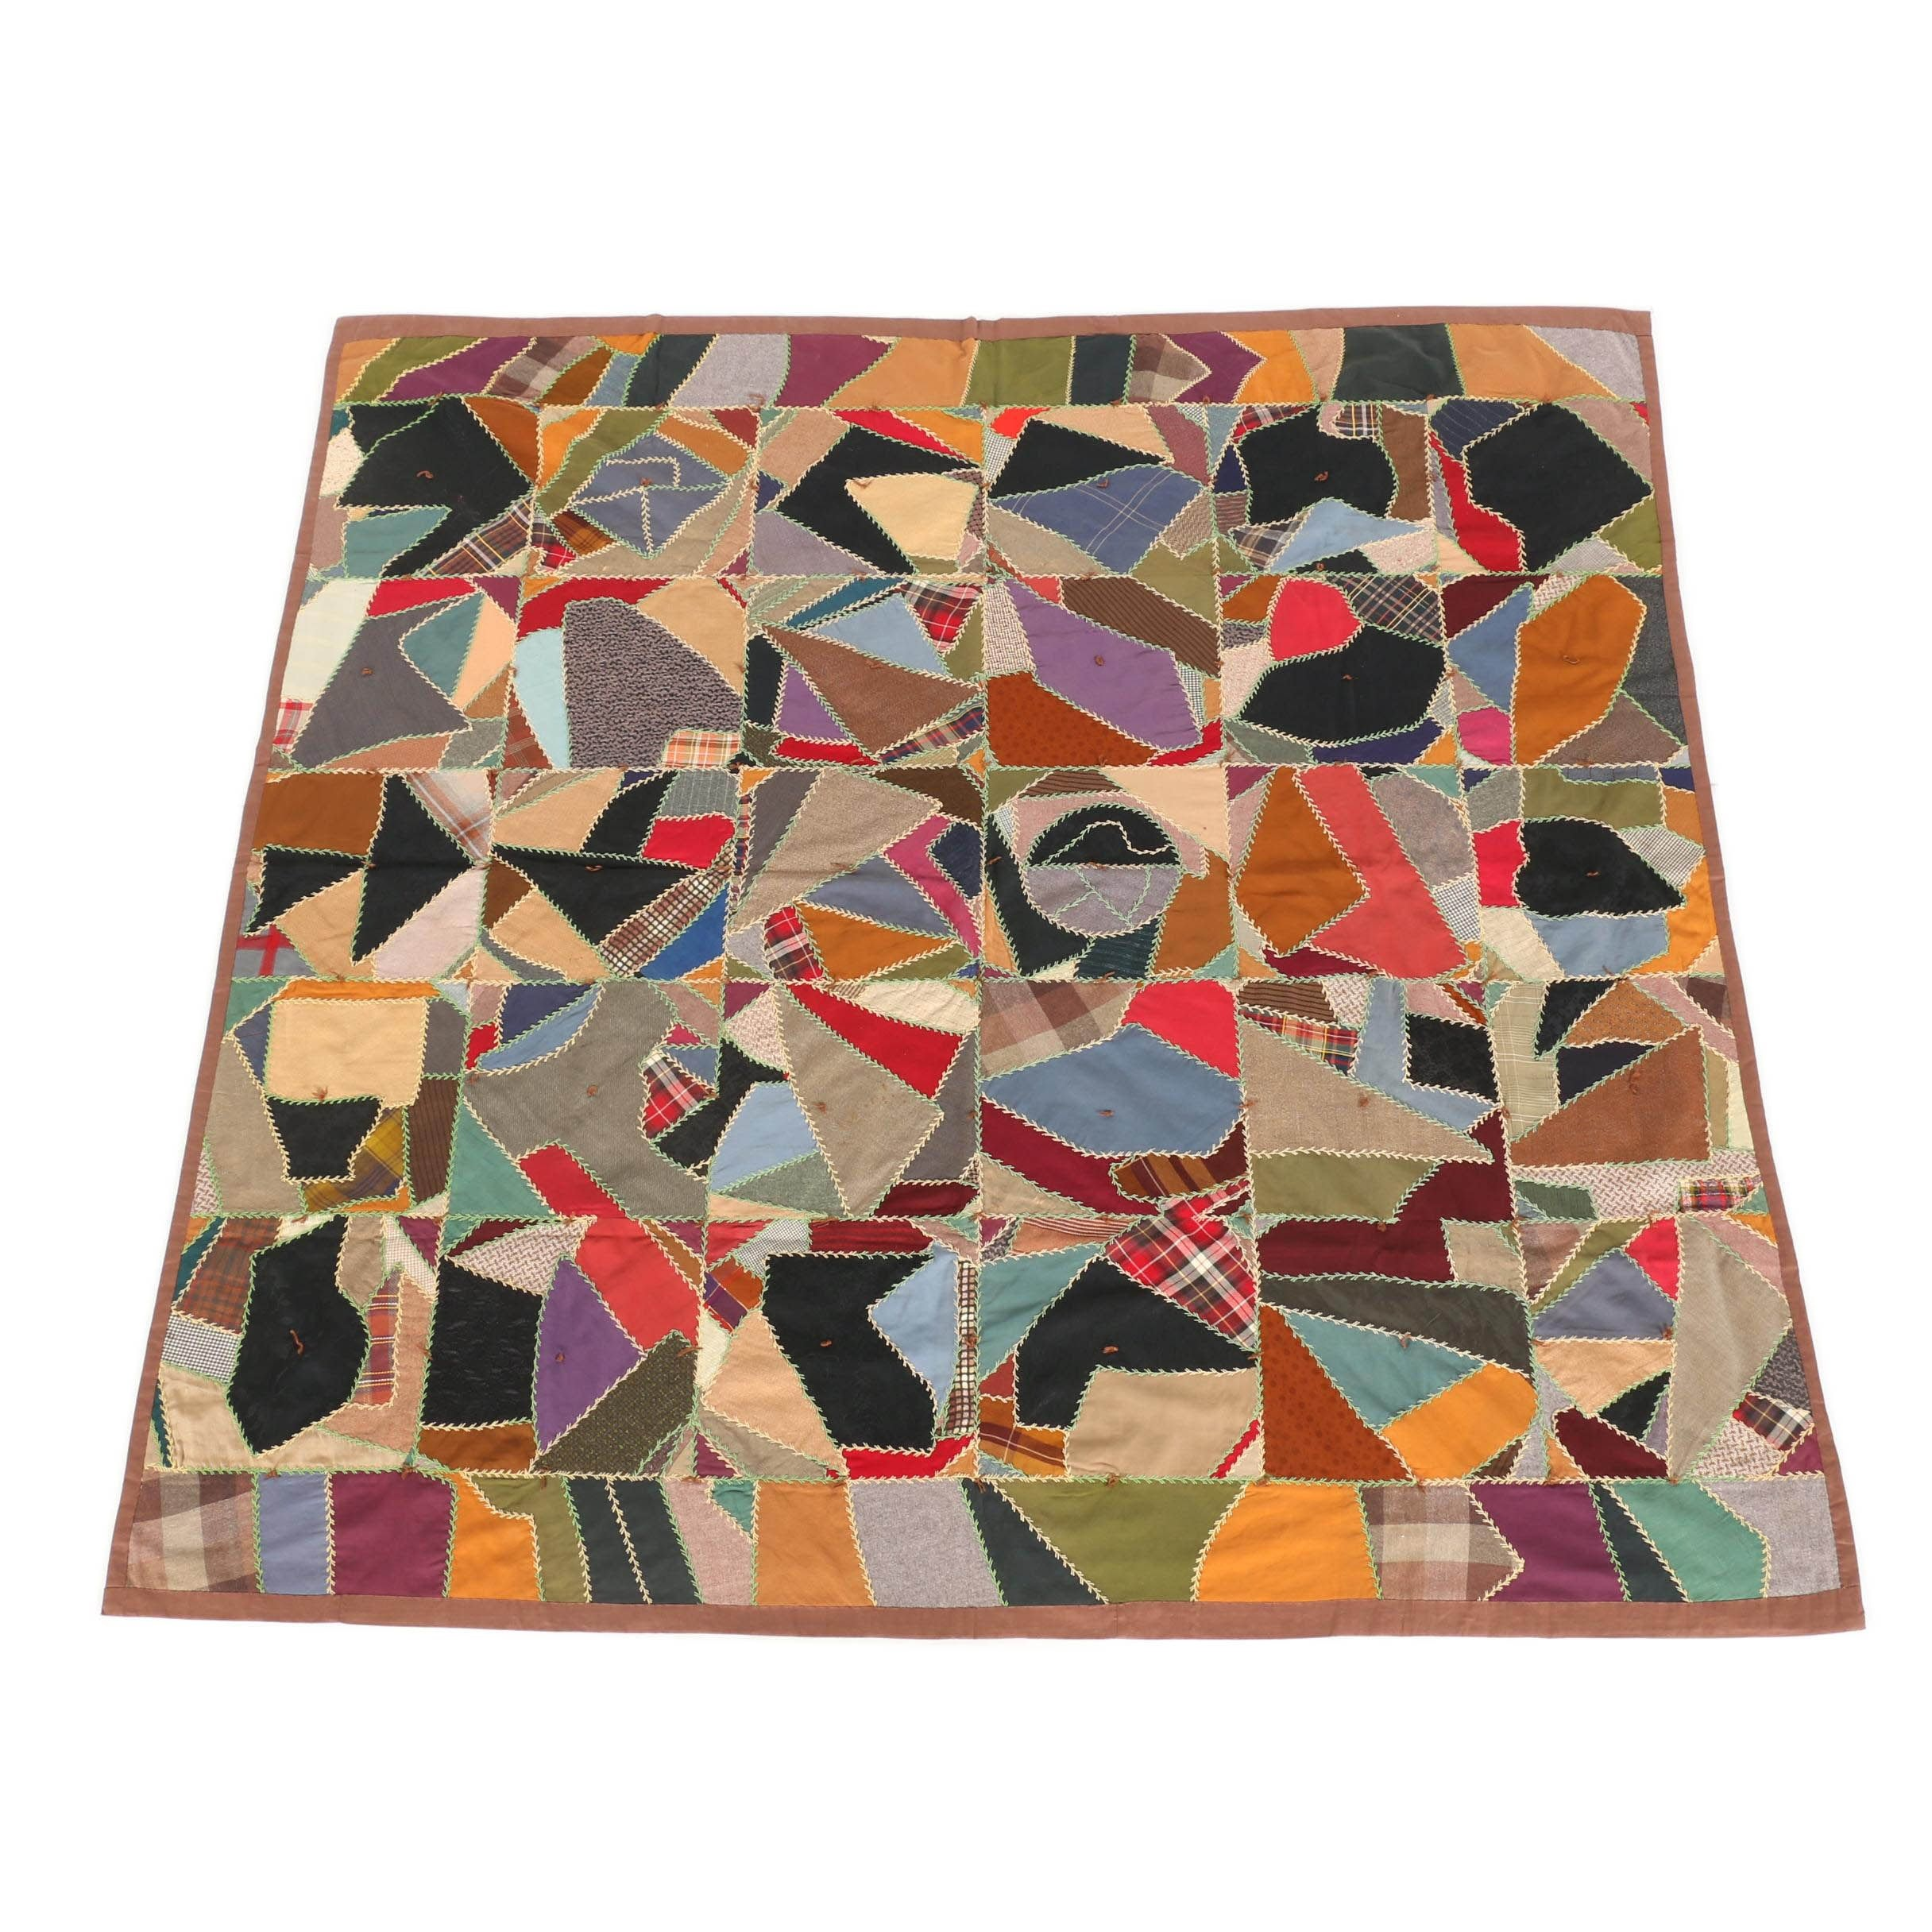 Semi-Antique Hand Embroidered Crazy Quilt